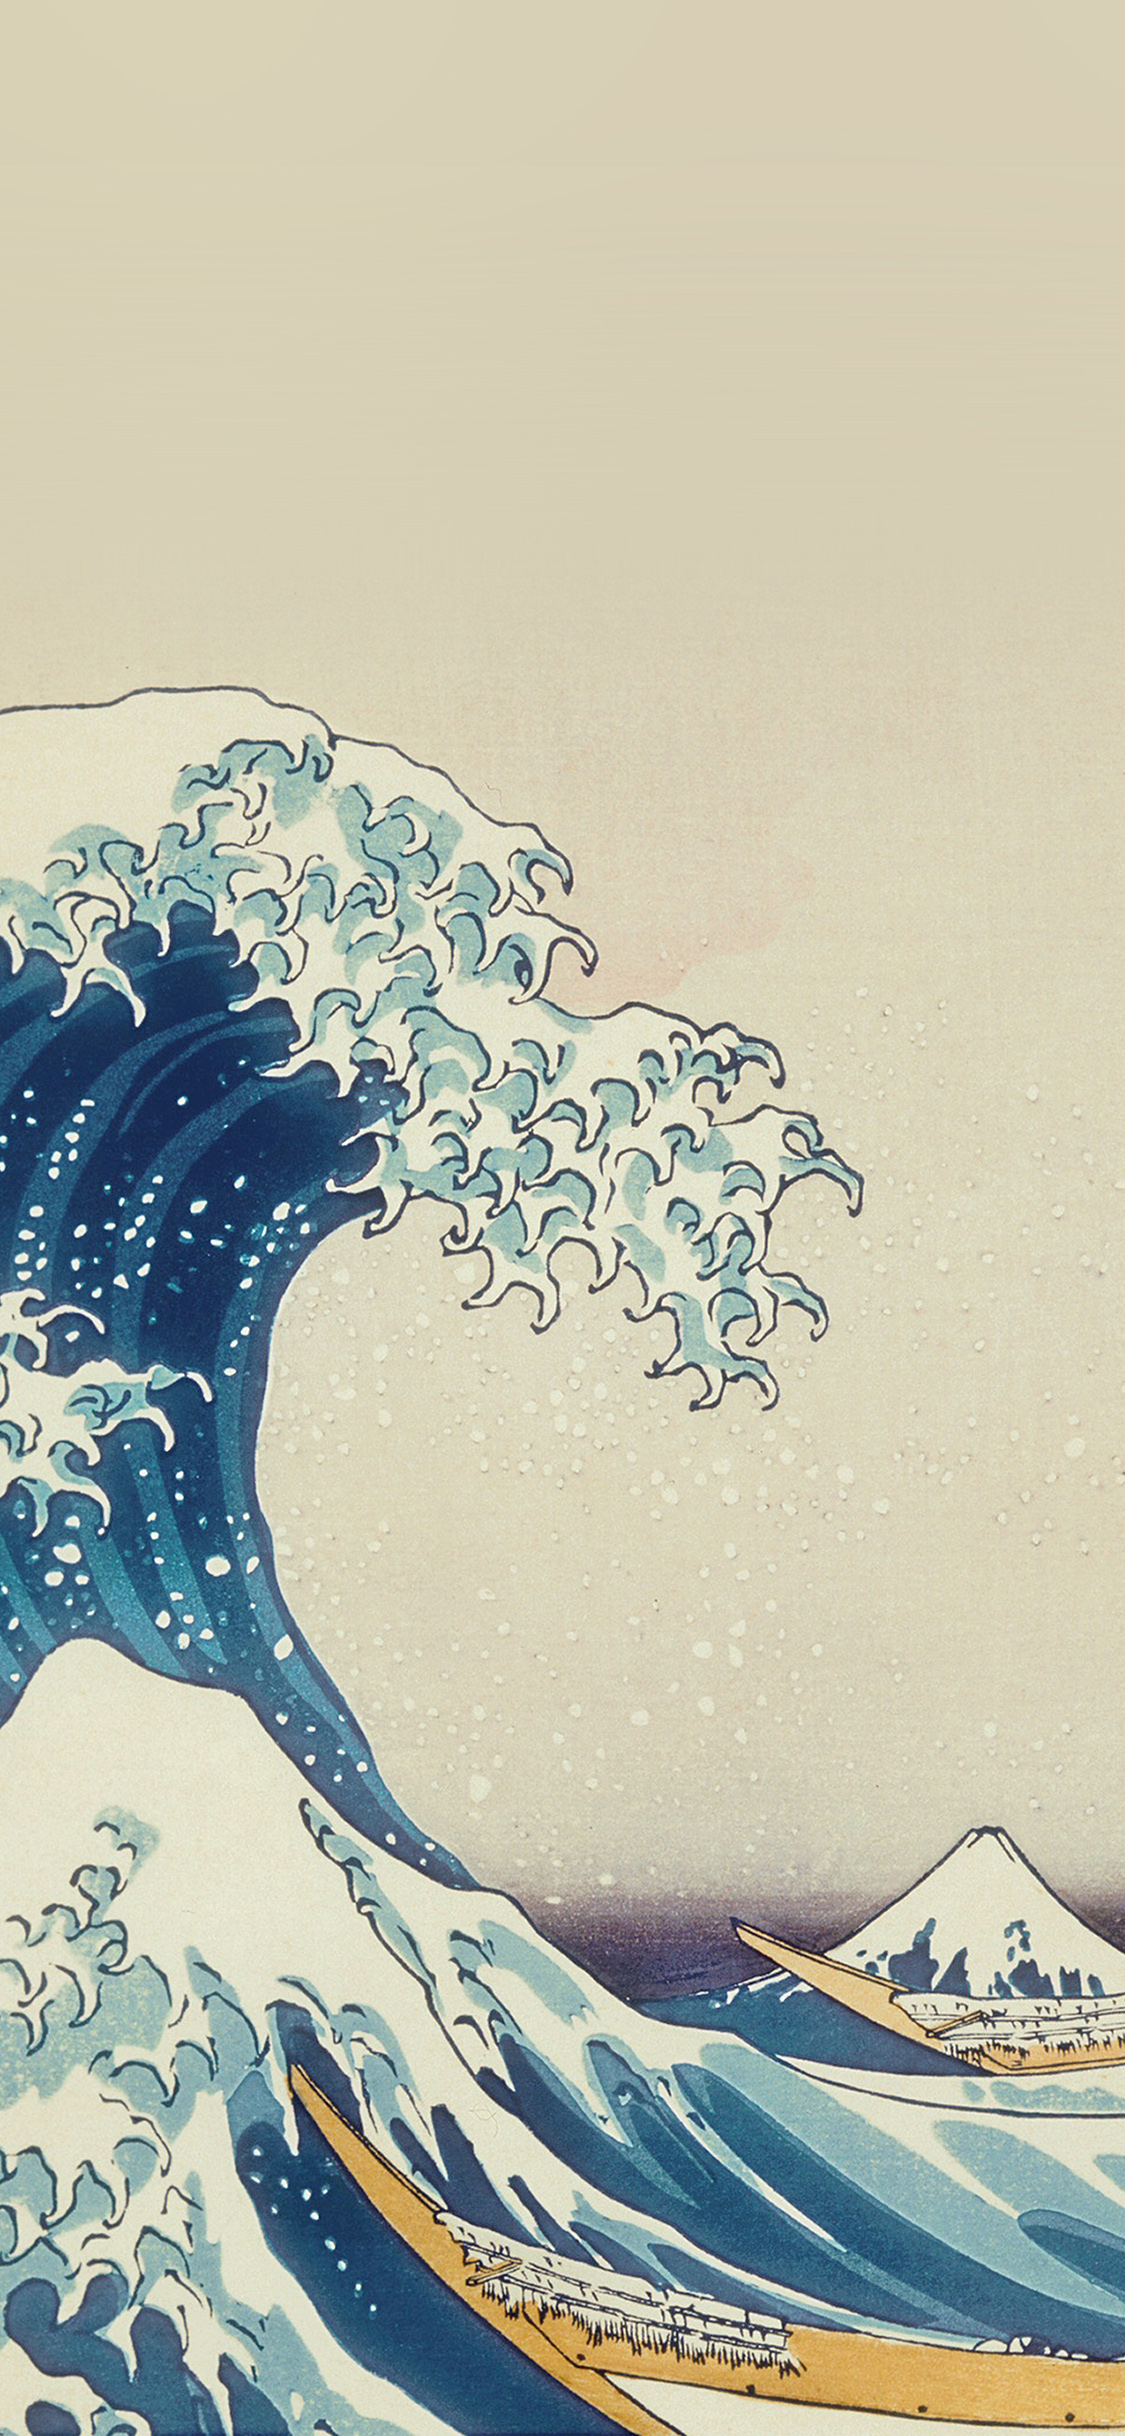 as11-wave-art-hokusai-painting-classic-art-illustration ...